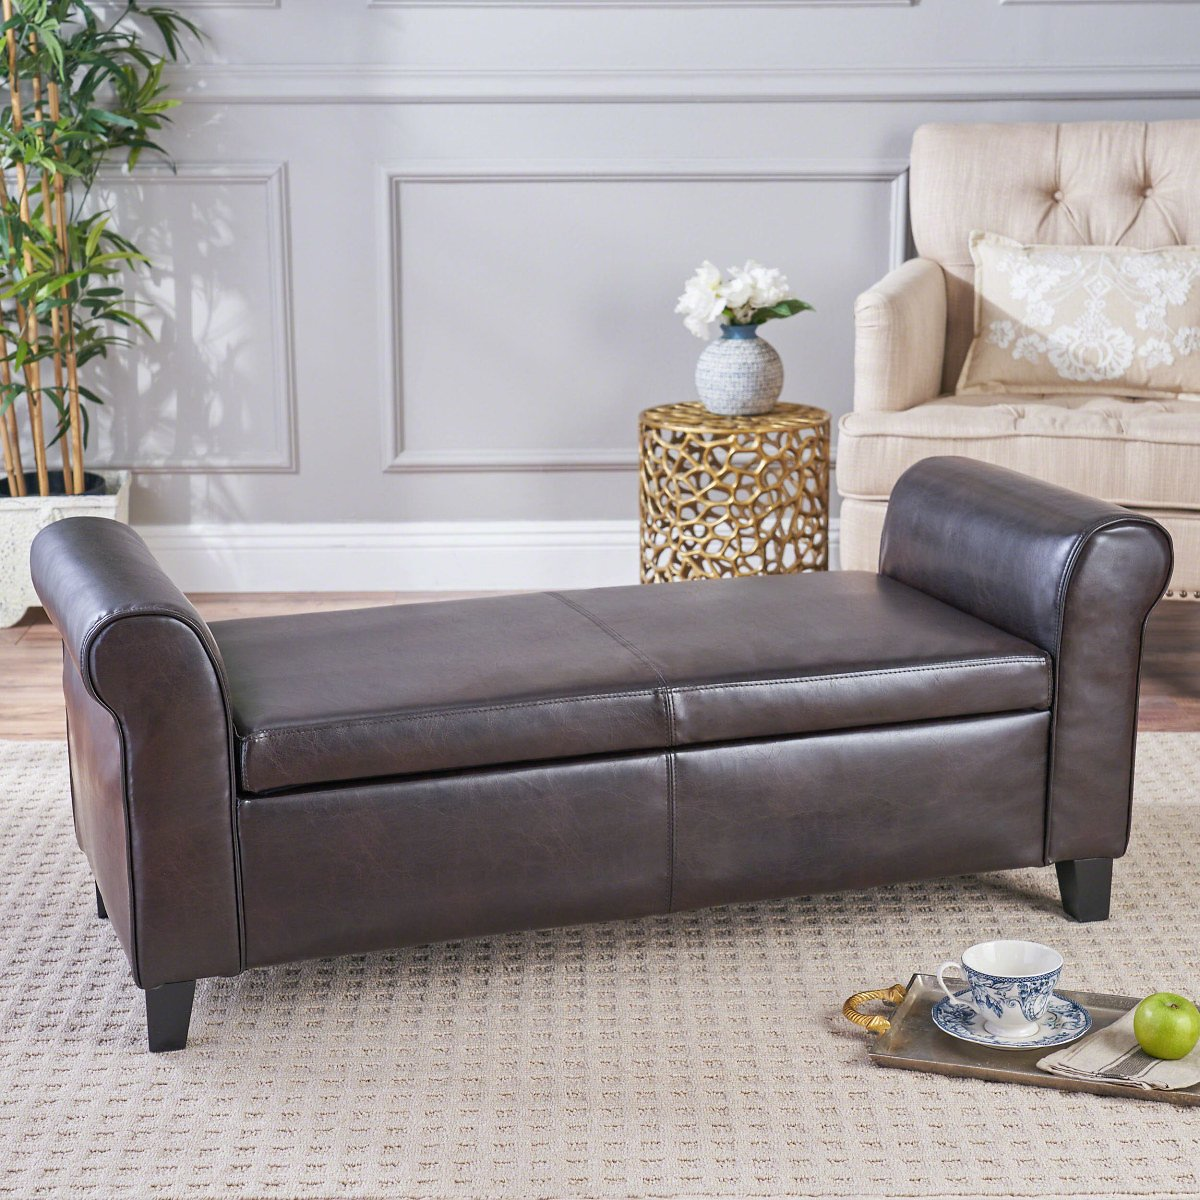 Price Drop! Noble House Haden Armed Brown Faux Leather Storage Bench + F/S